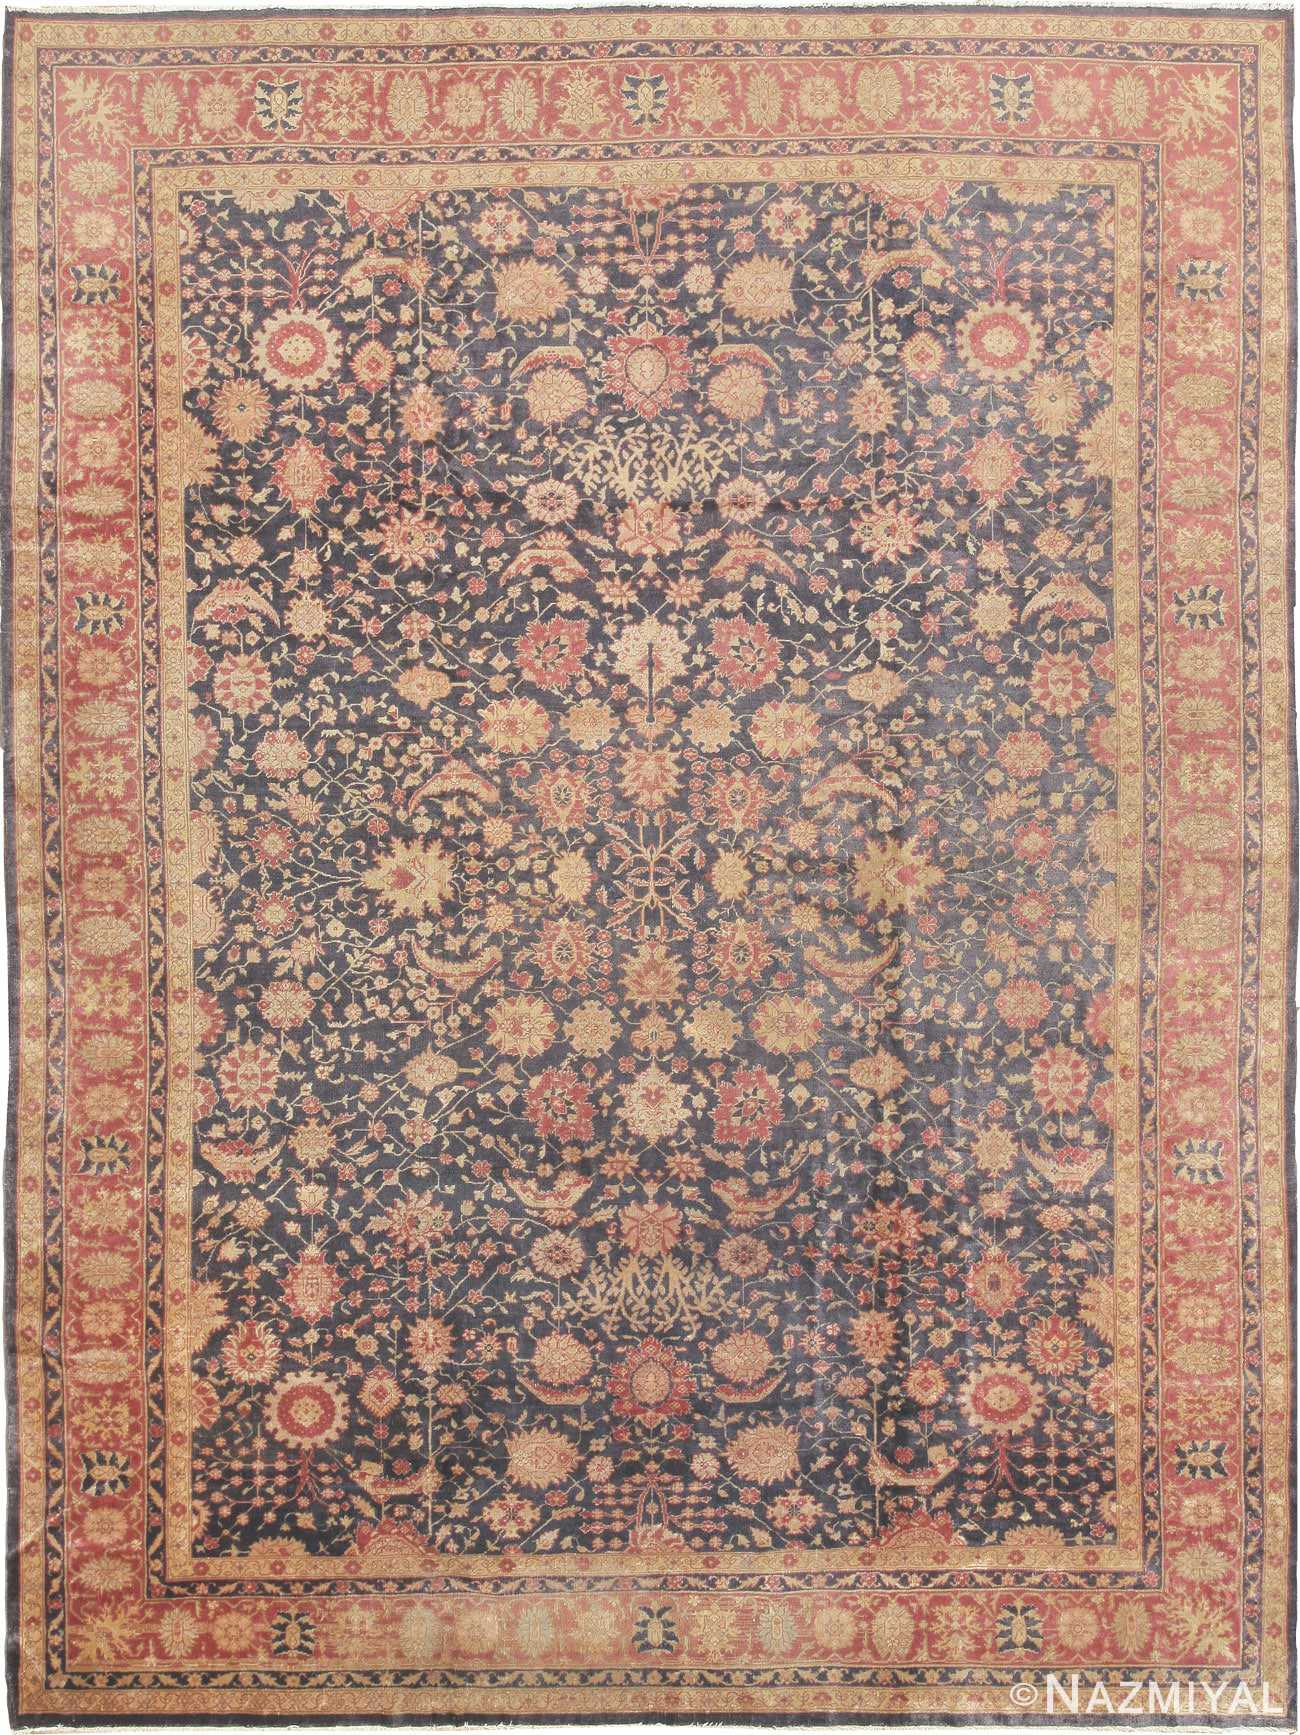 rug atlanta index s and persian antiques rugs kishi antique turkish oriental